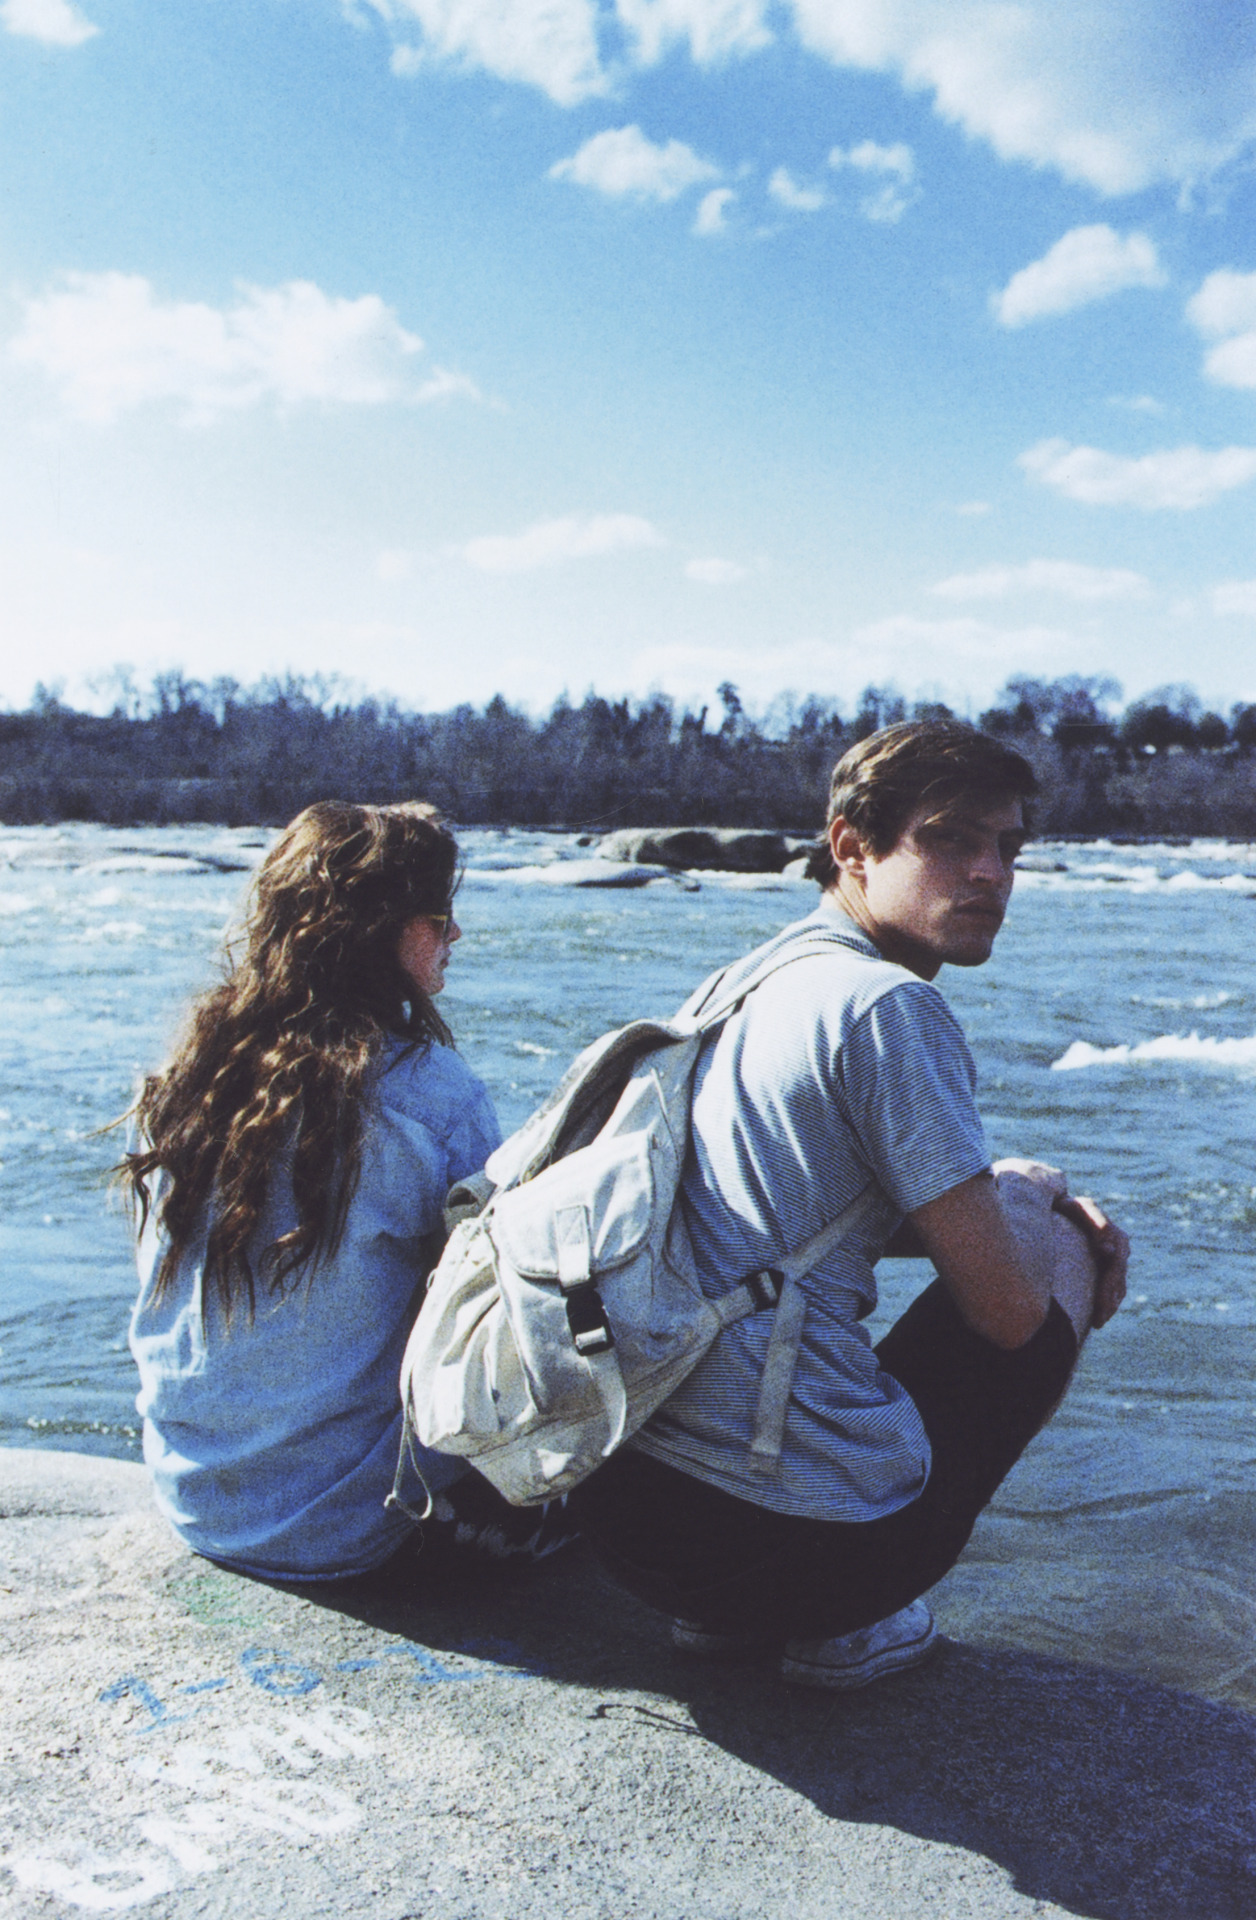 jordantiberio:  M and Andi at the river, Richmond, VA. March 2013.